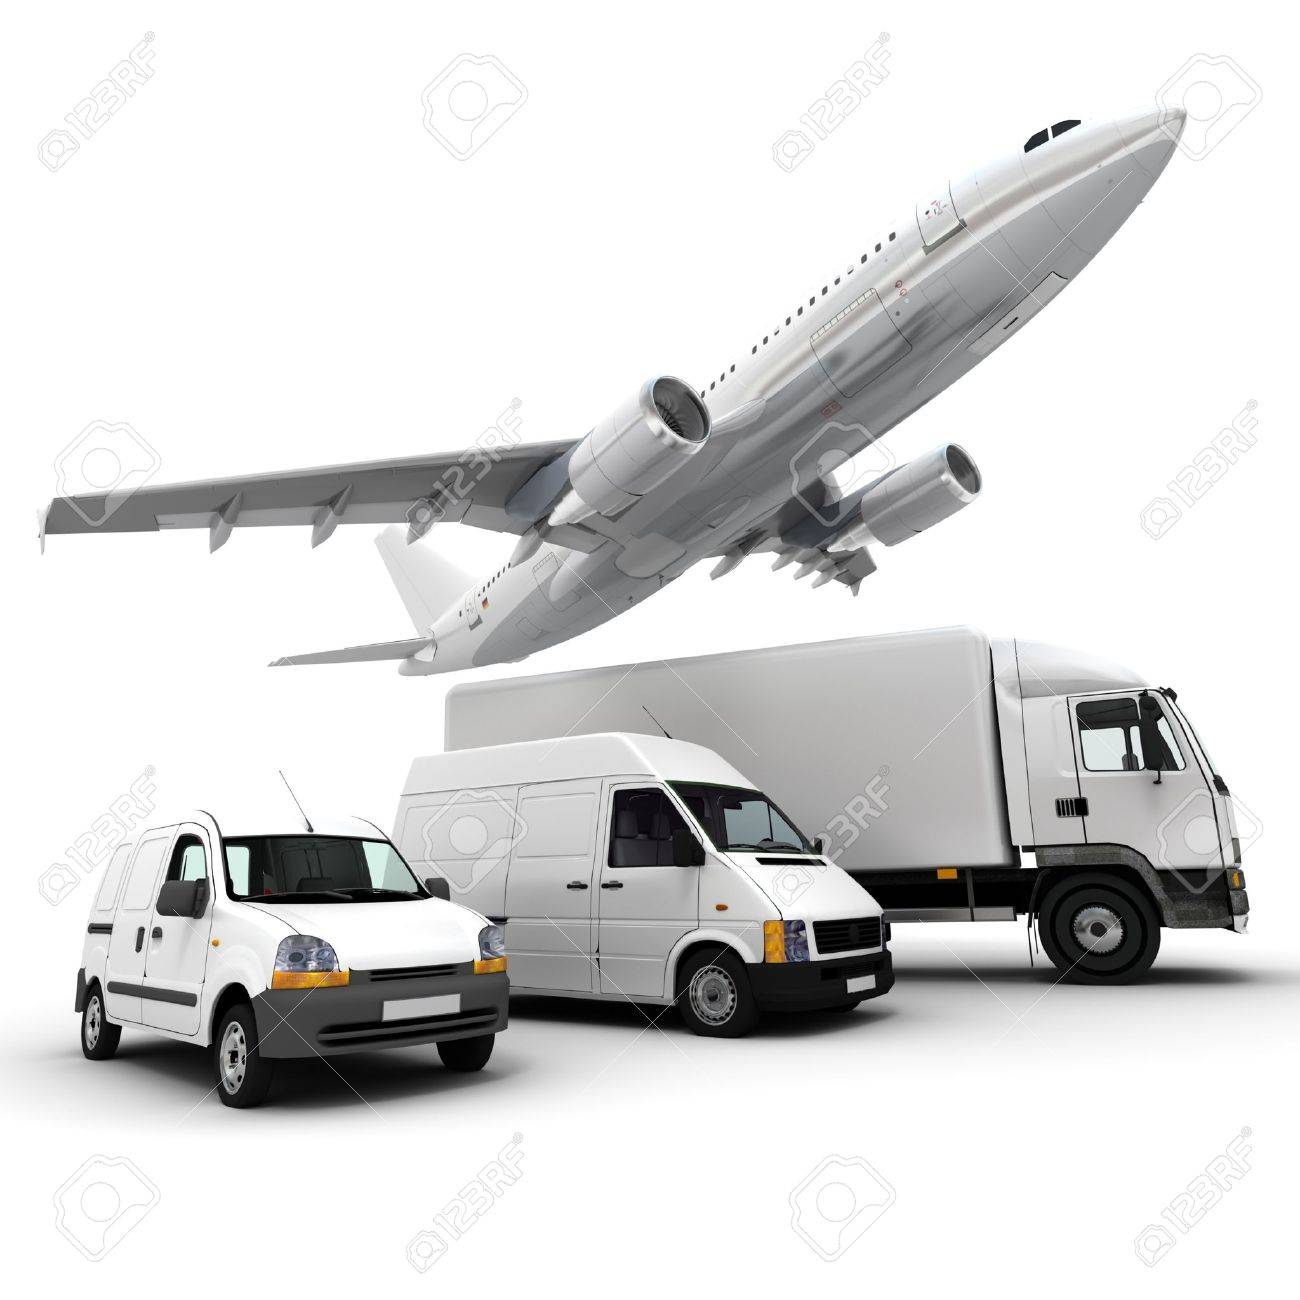 3d rendering of an airplane a truck a van and a lorry against